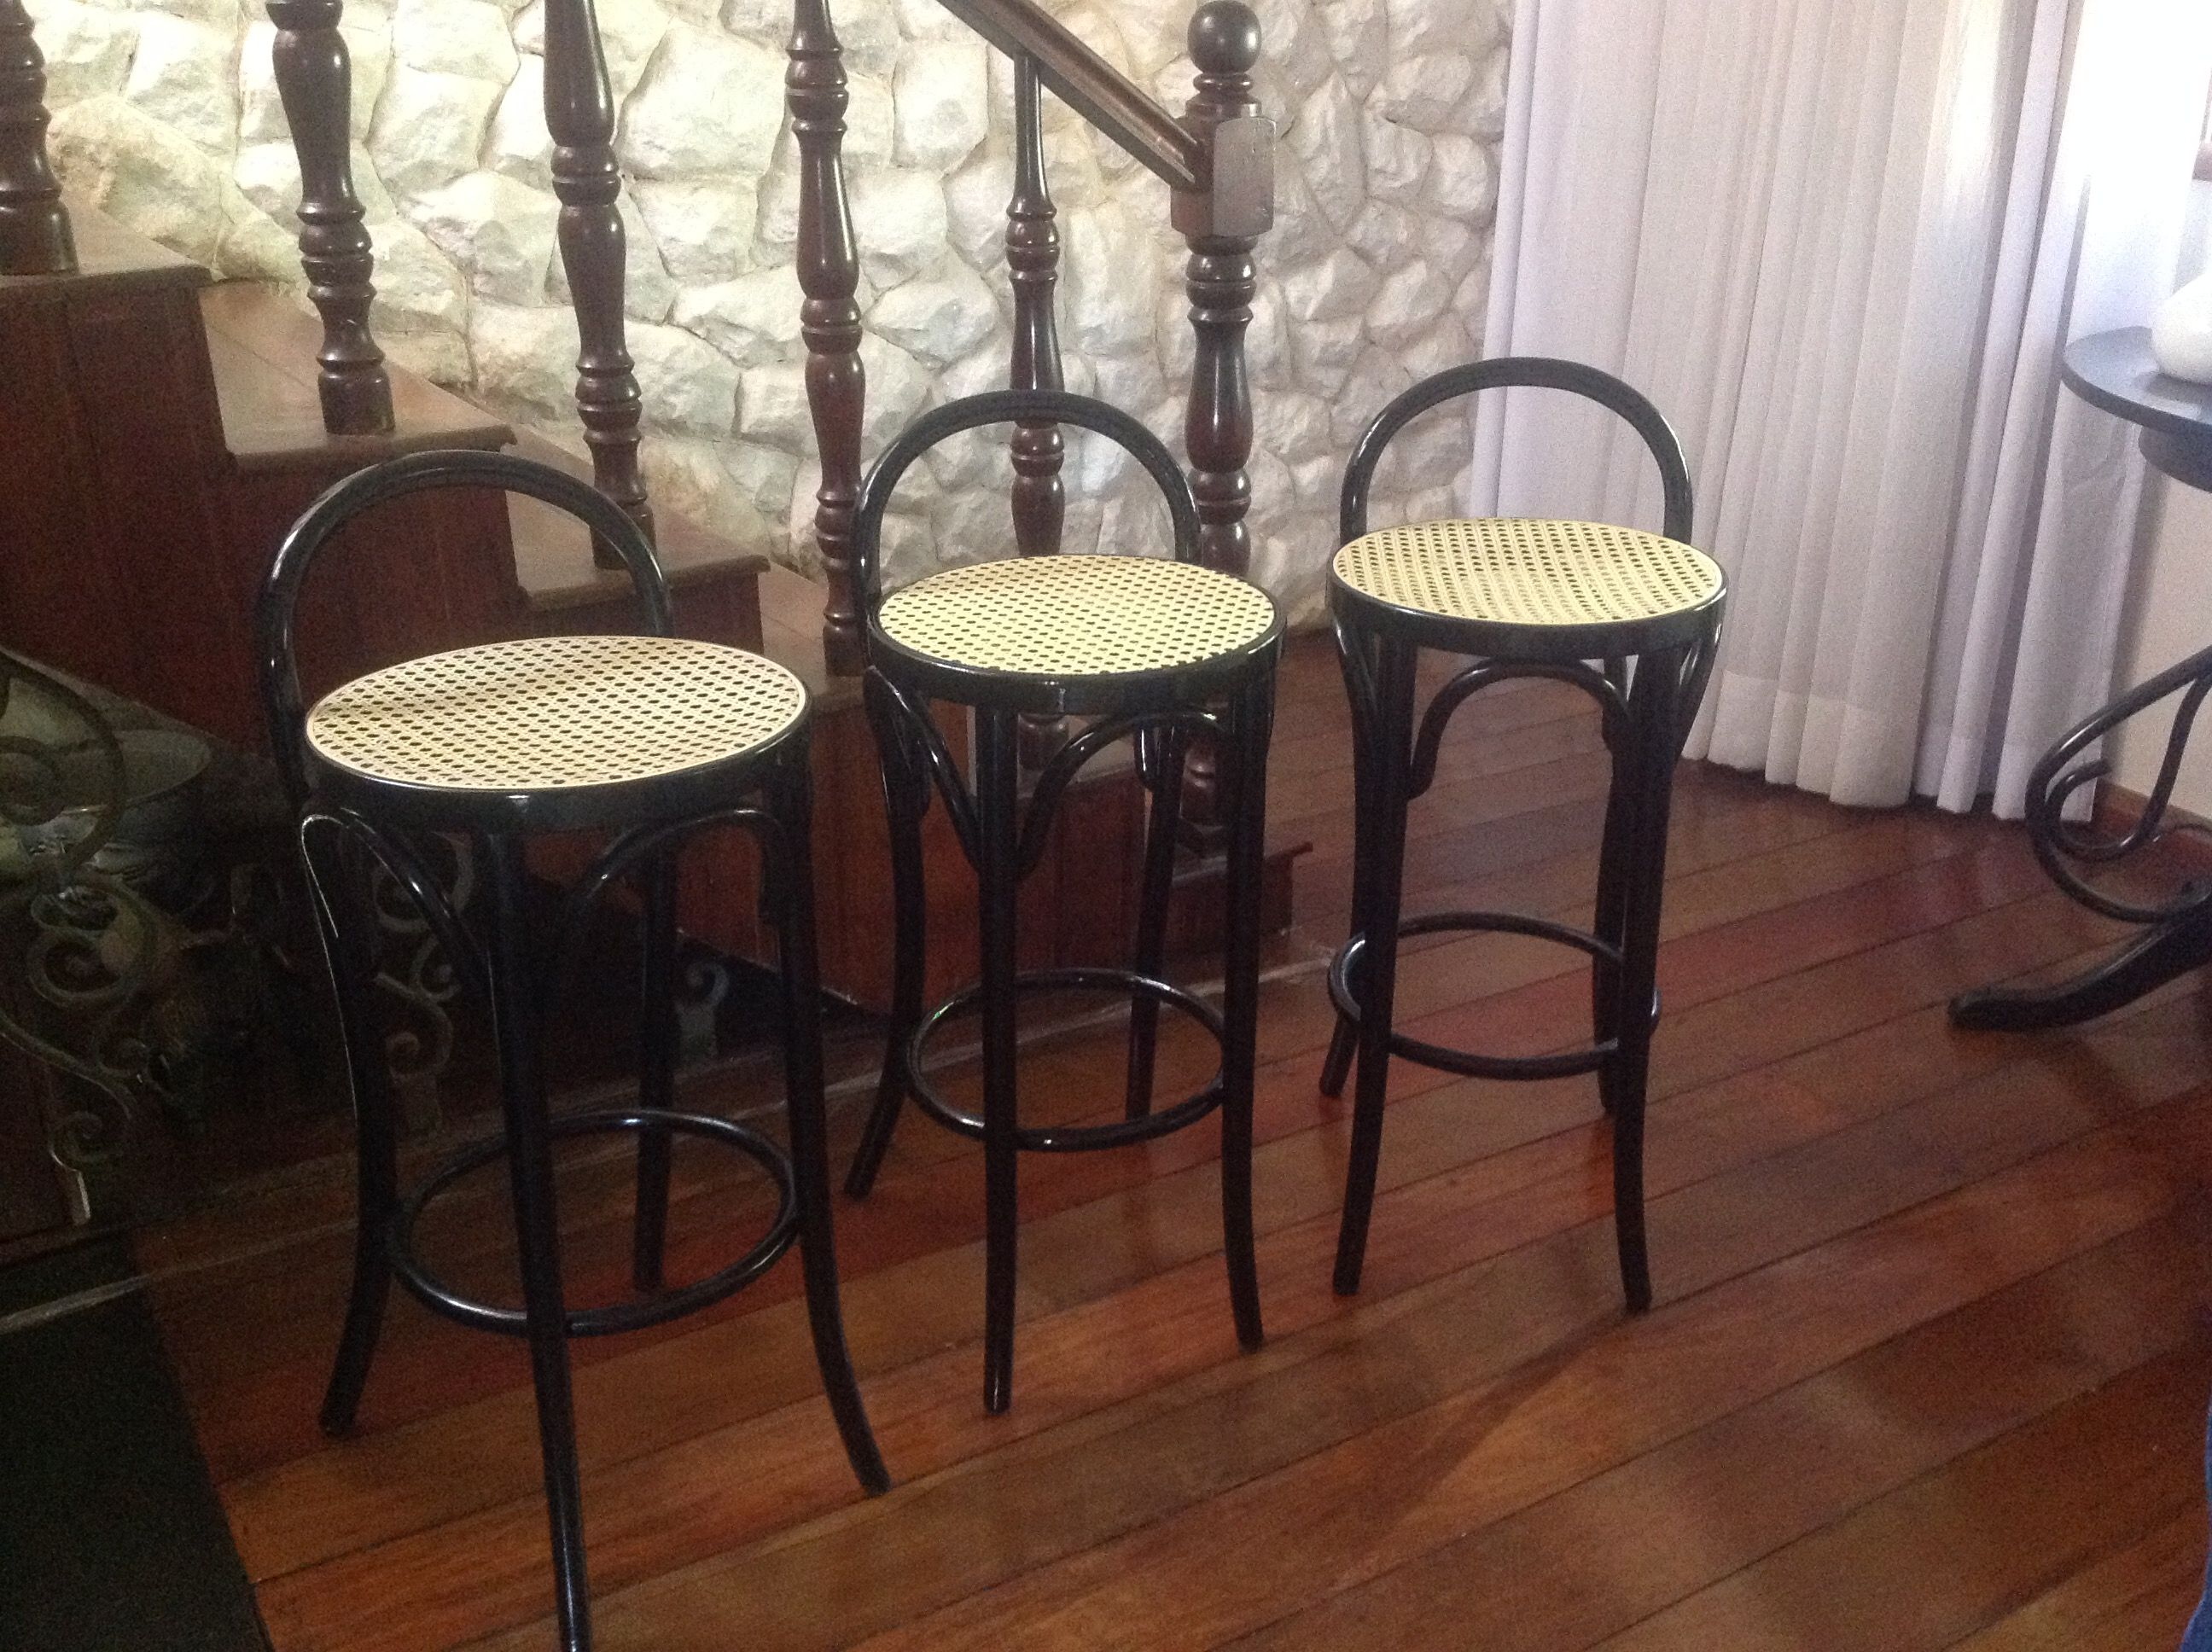 Vintage thonet style cafe chairs with stenciled seats - Restauracoes Thonart